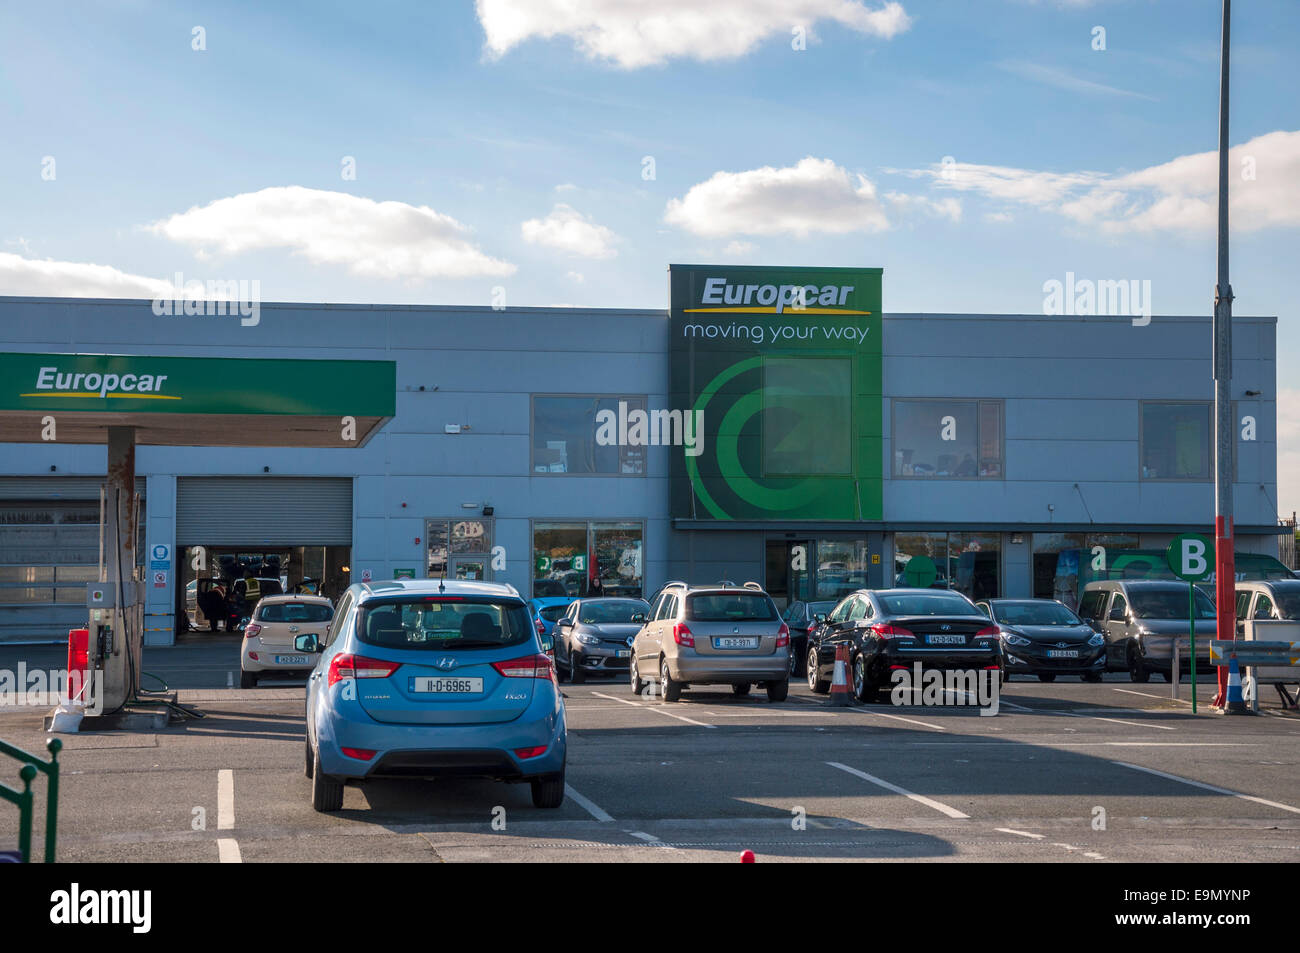 Europcar Car Rentals At Dublin Airport Ireland Stock Photo 74834194